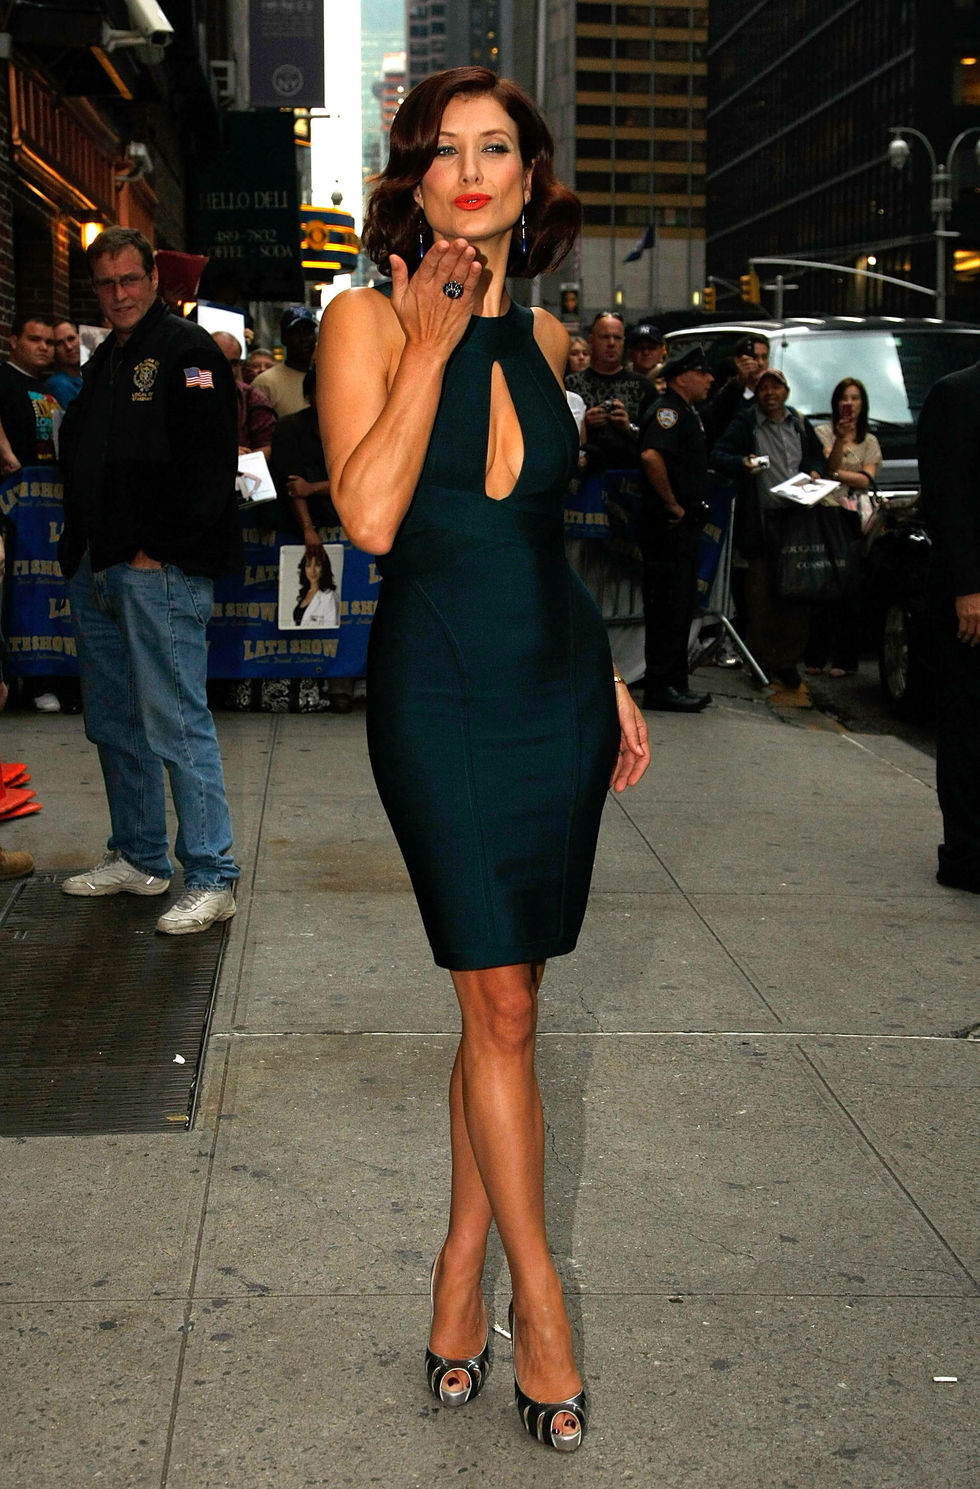 kate-walsh-arrives-at-the-late-show-with-david-letterman-in-new-york-city-05